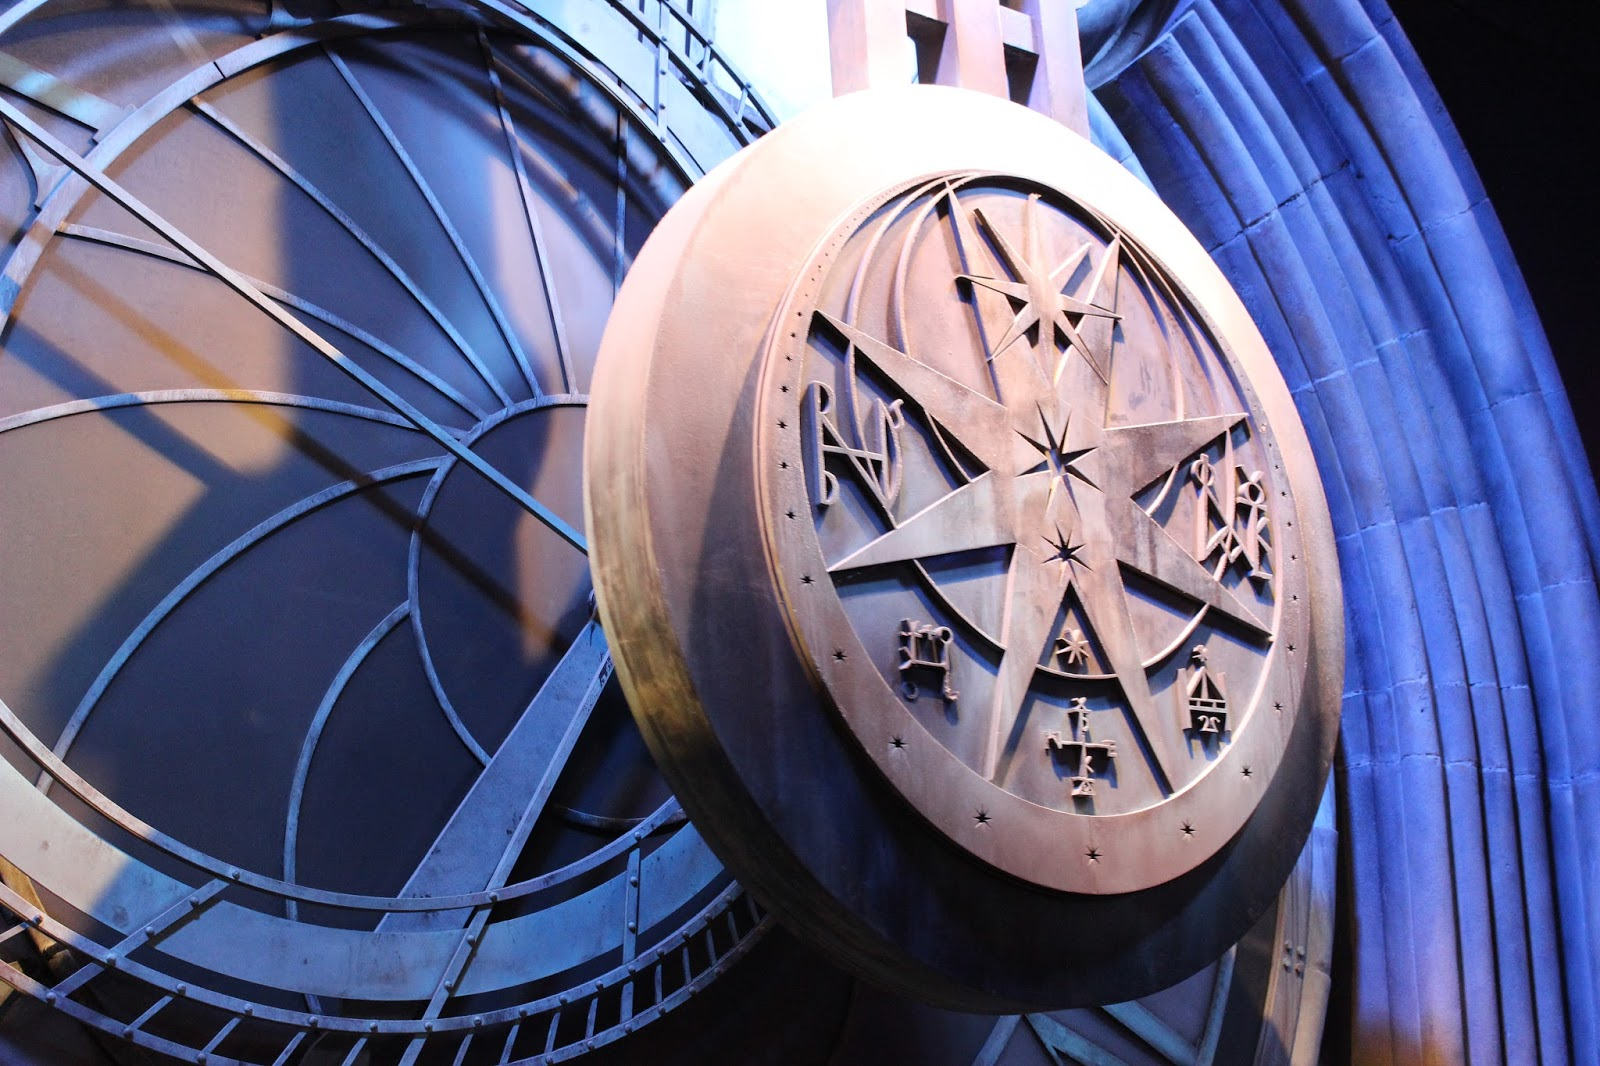 Harry Potter studio tour london clock